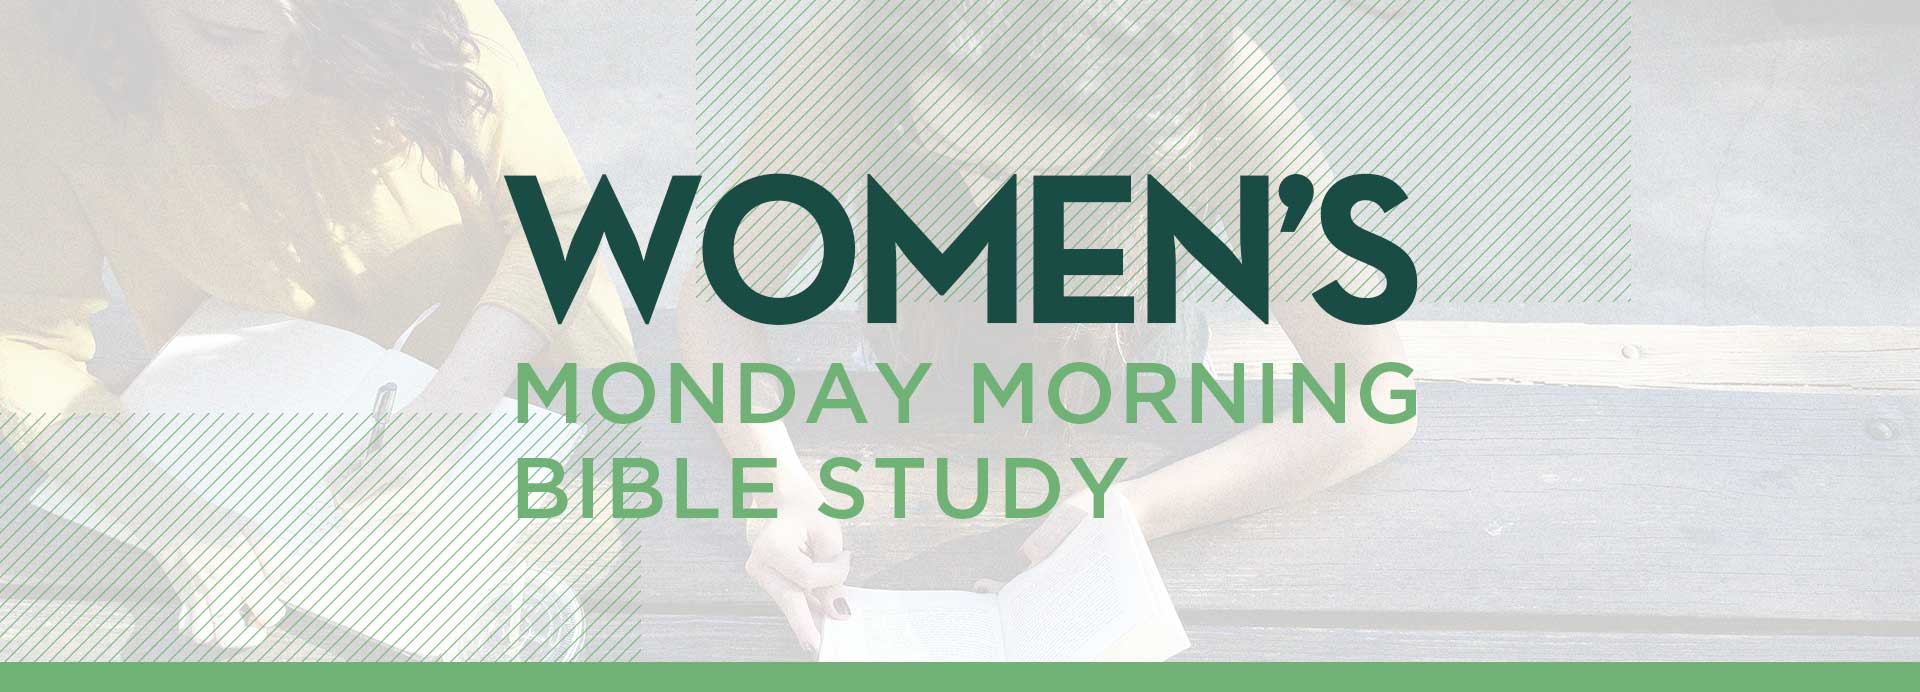 Monday-Morning-Bible-Study_1920x692.jpg